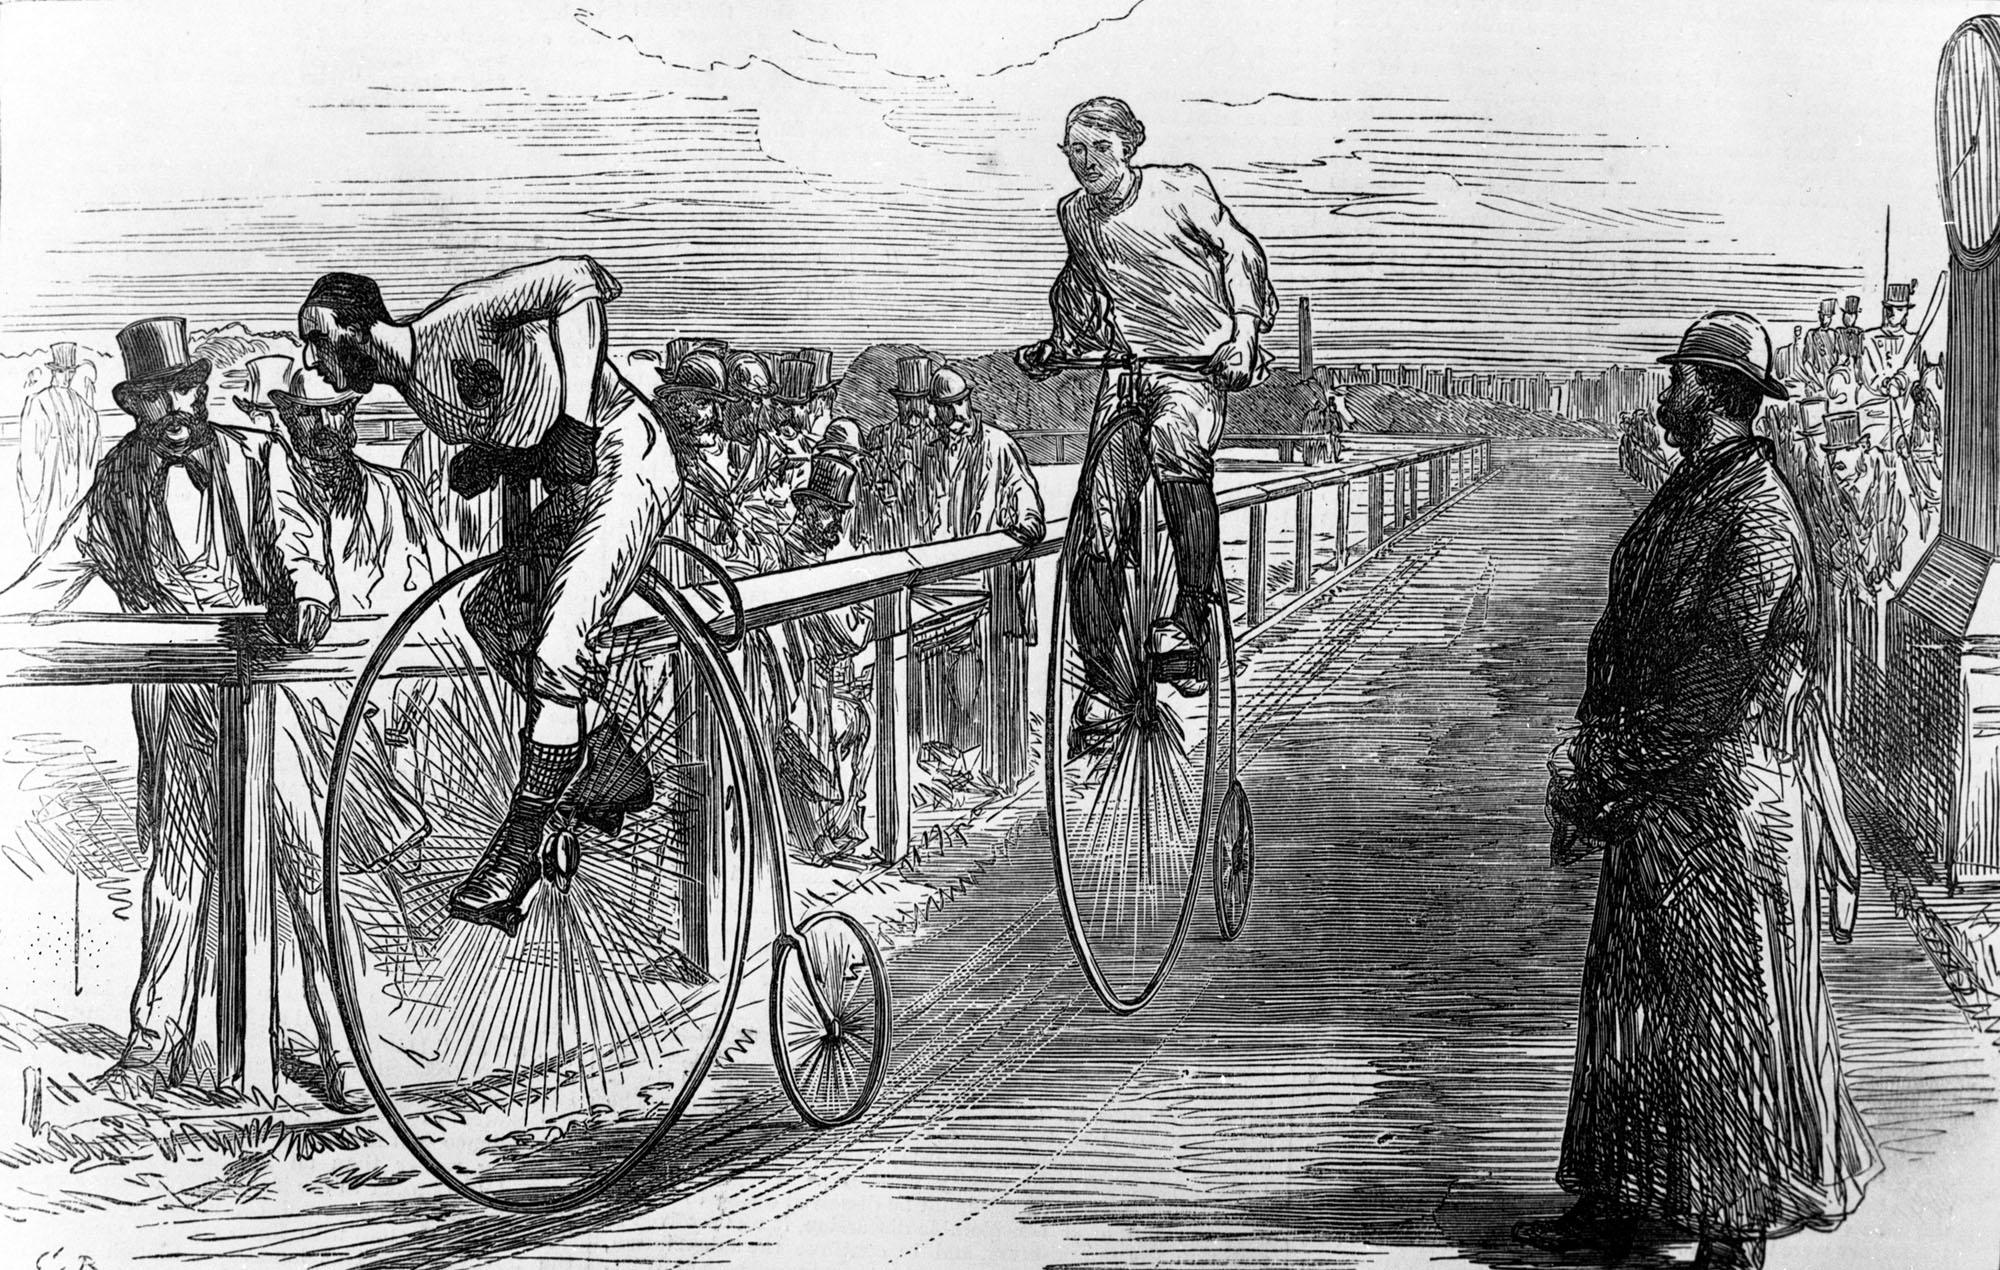 Early bike designs were widely different. But as time passed standards emerged.